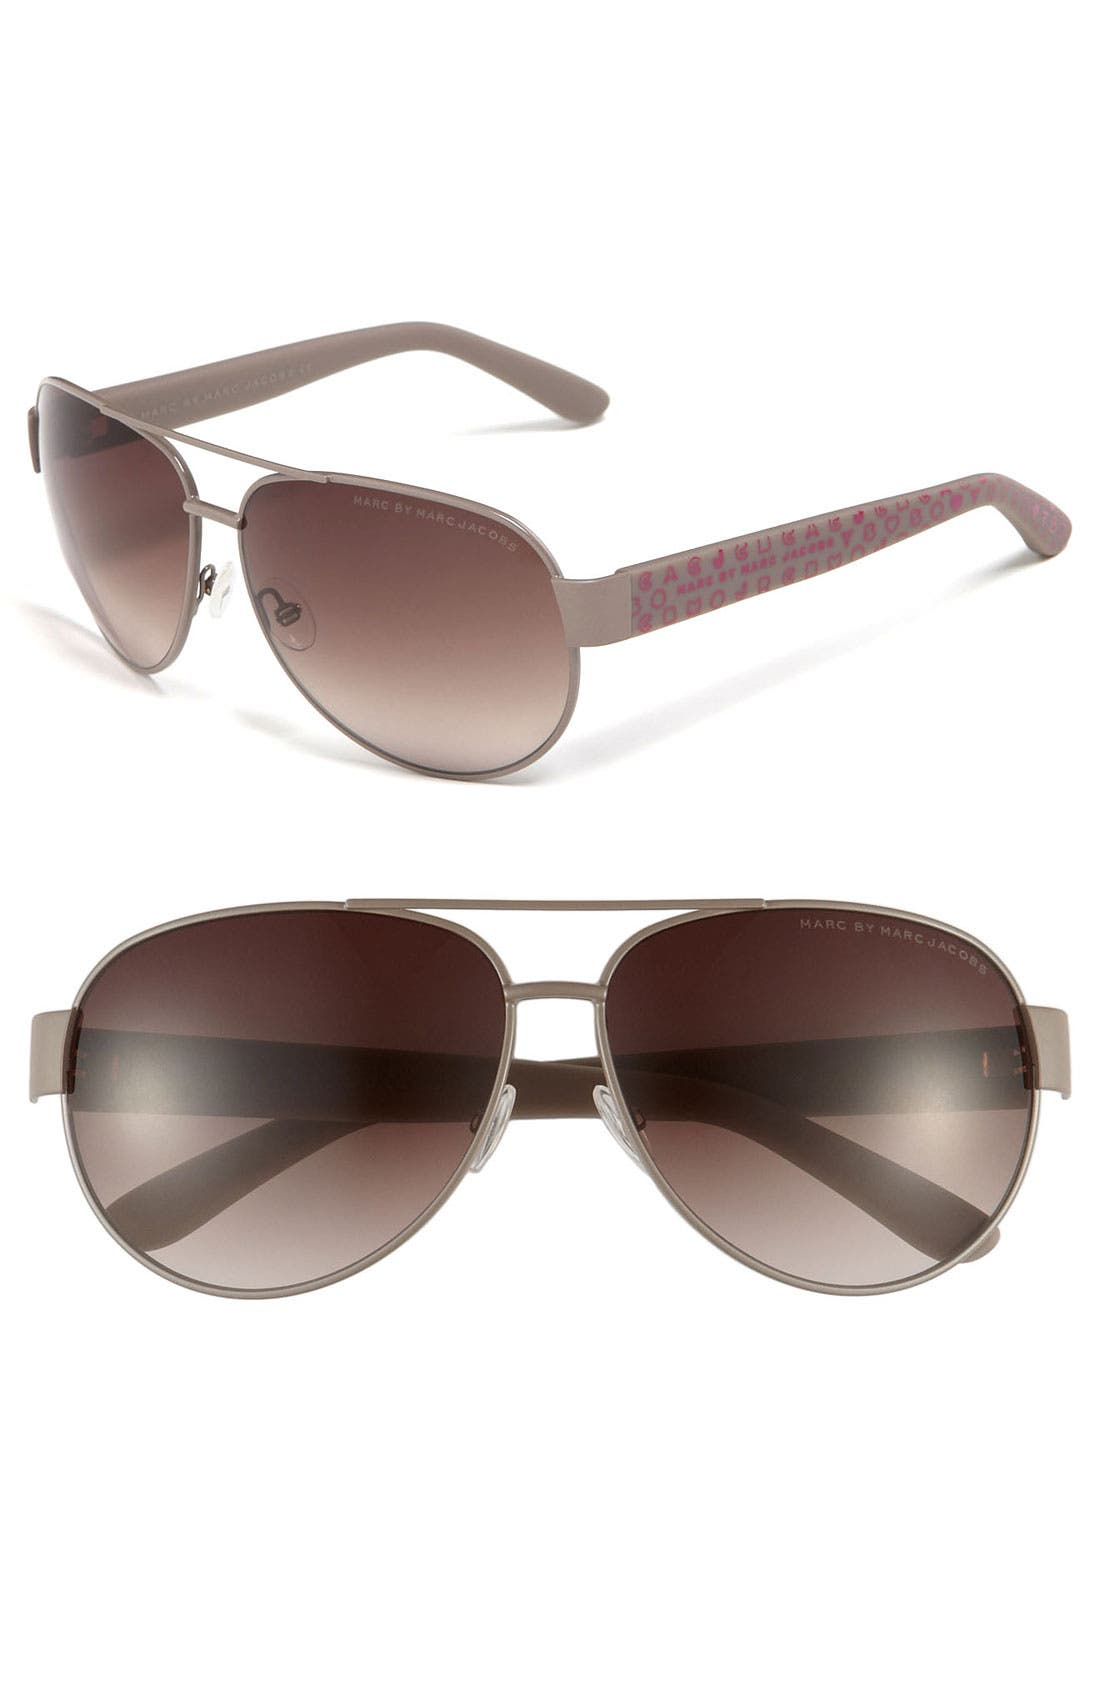 Main Image - MARC BY MARC JACOBS 60mm Aviator Sunglasses